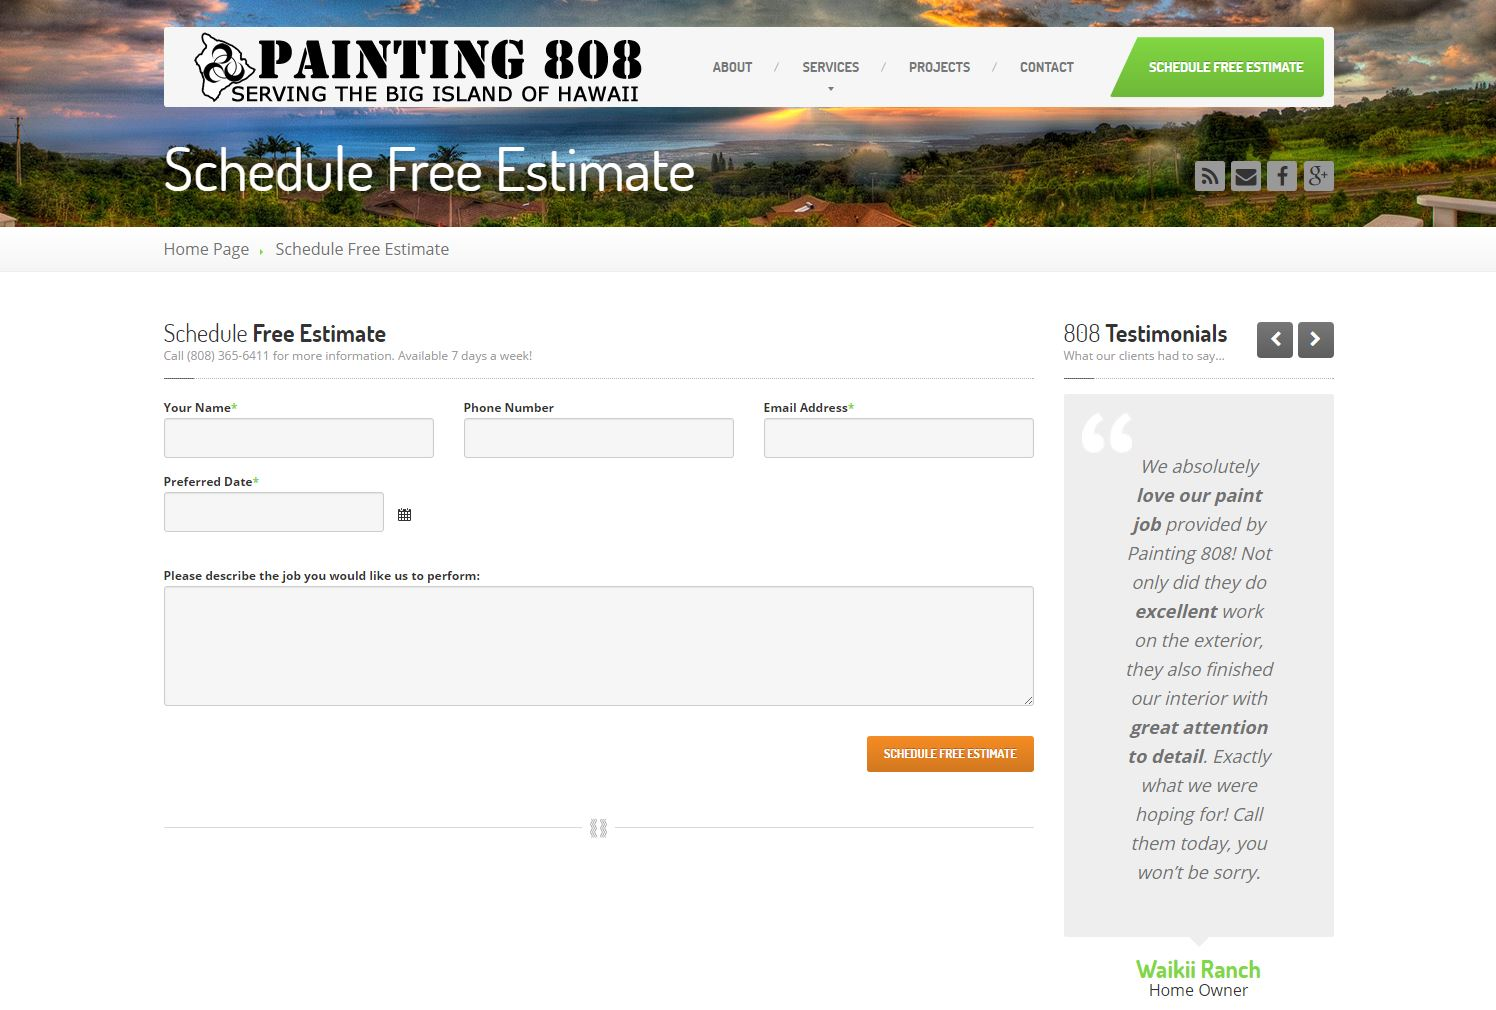 Painting Contractor Website Design p808b